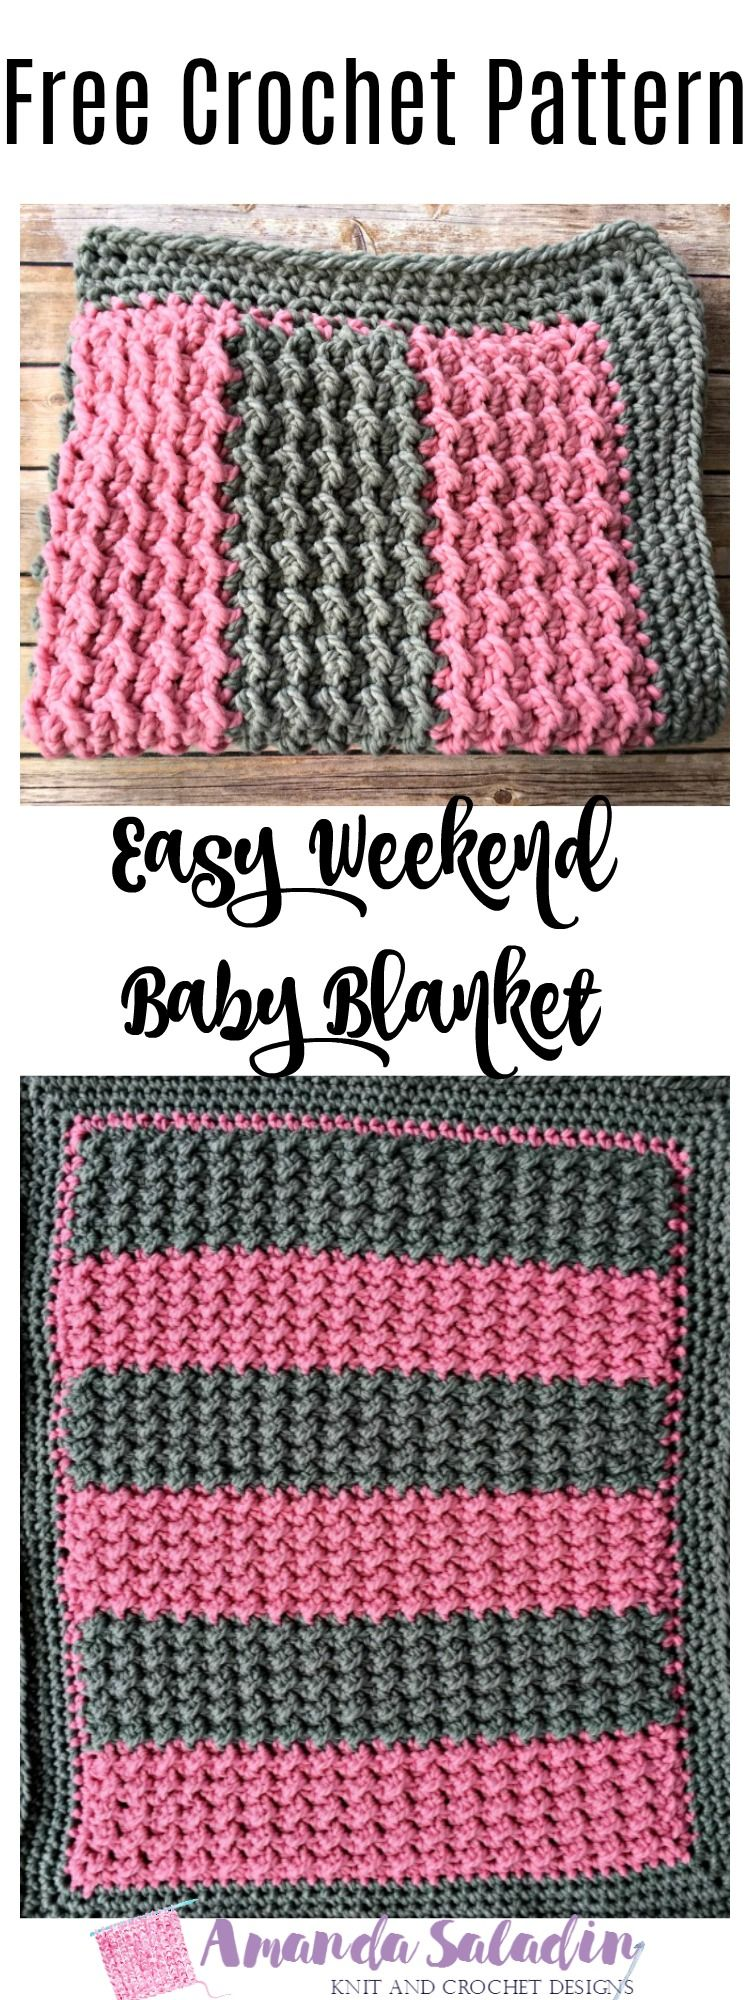 Easy Weekend Baby Blanket - Free Crochet Pattern | Tejido, Manta y ...